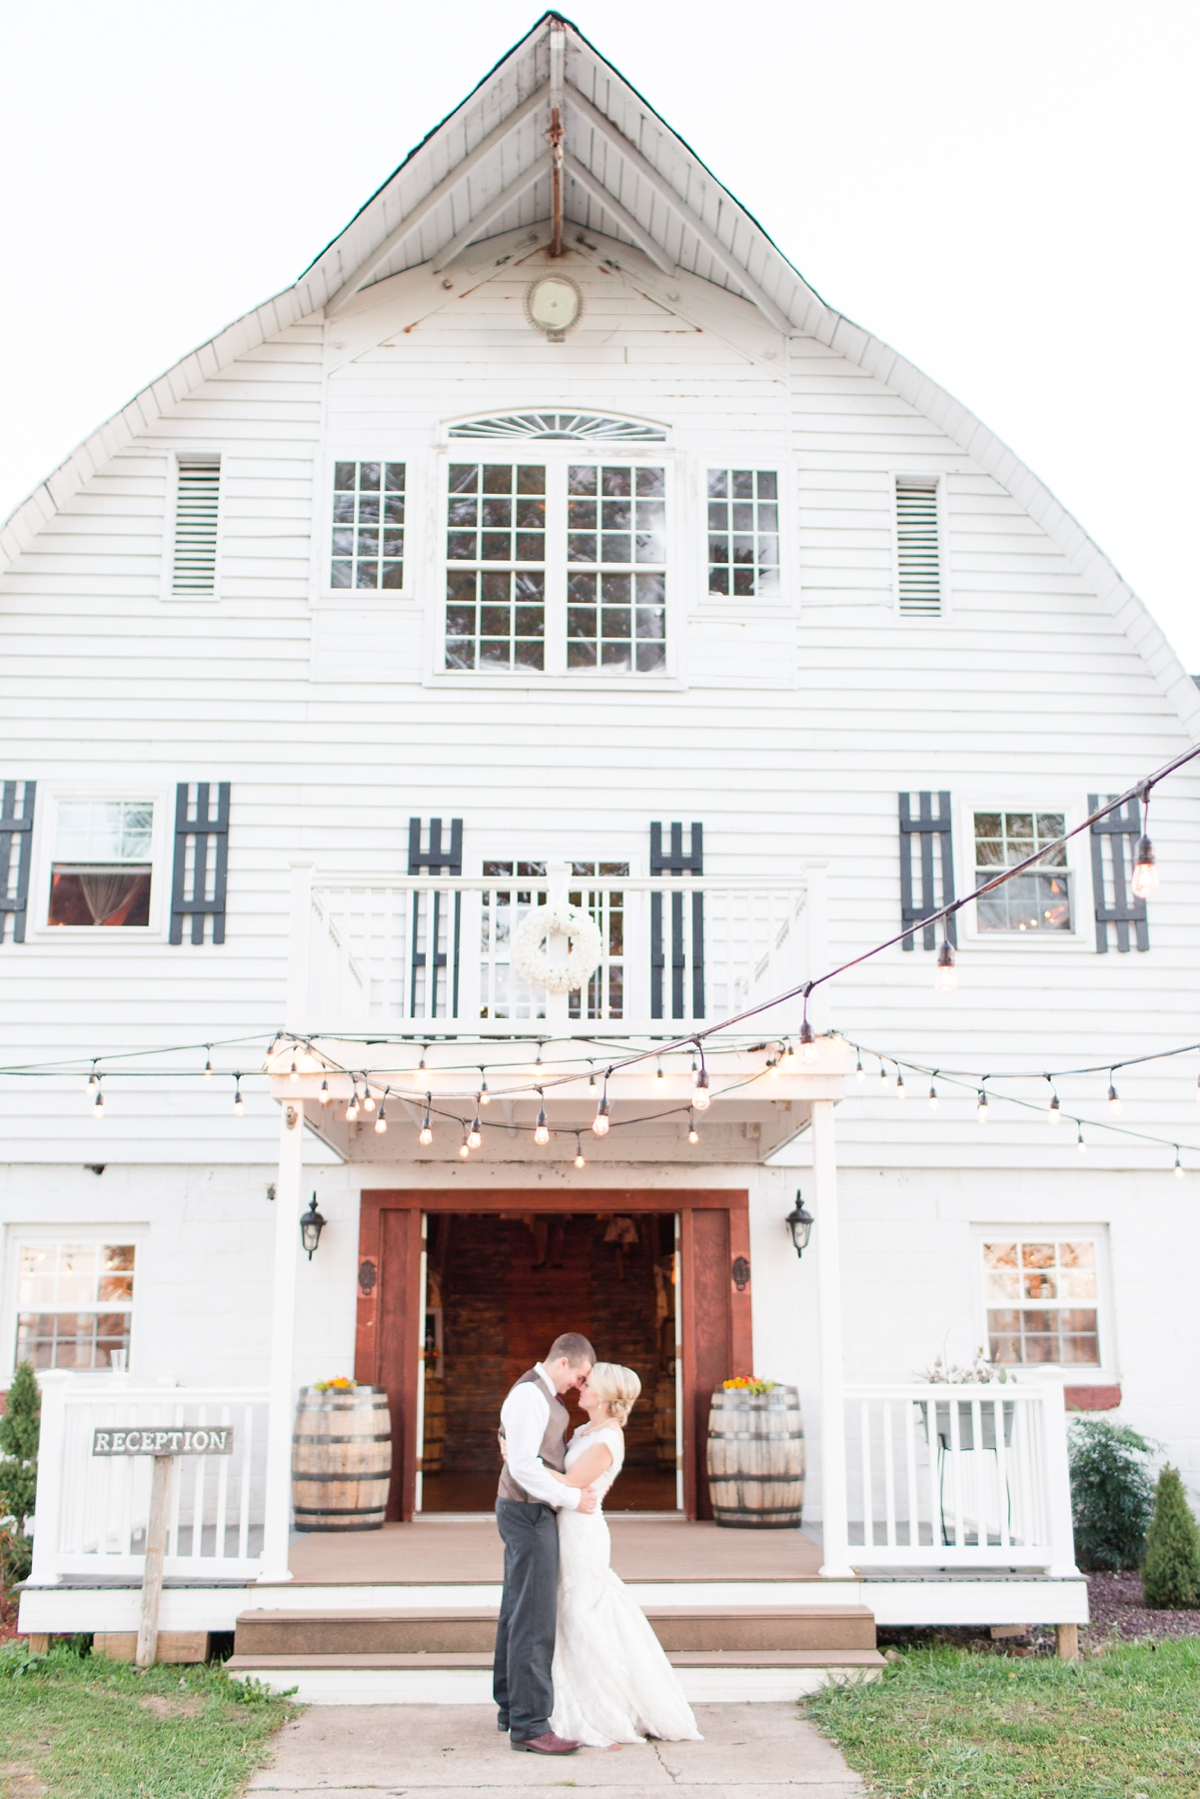 Bride and Groom Full Barn Portrait during Reception. A Rustic Brandy Hill Farm Wedding in Culpeper, Virginia featuring accents of cranberry and gold! Photos by Katelyn James Photography